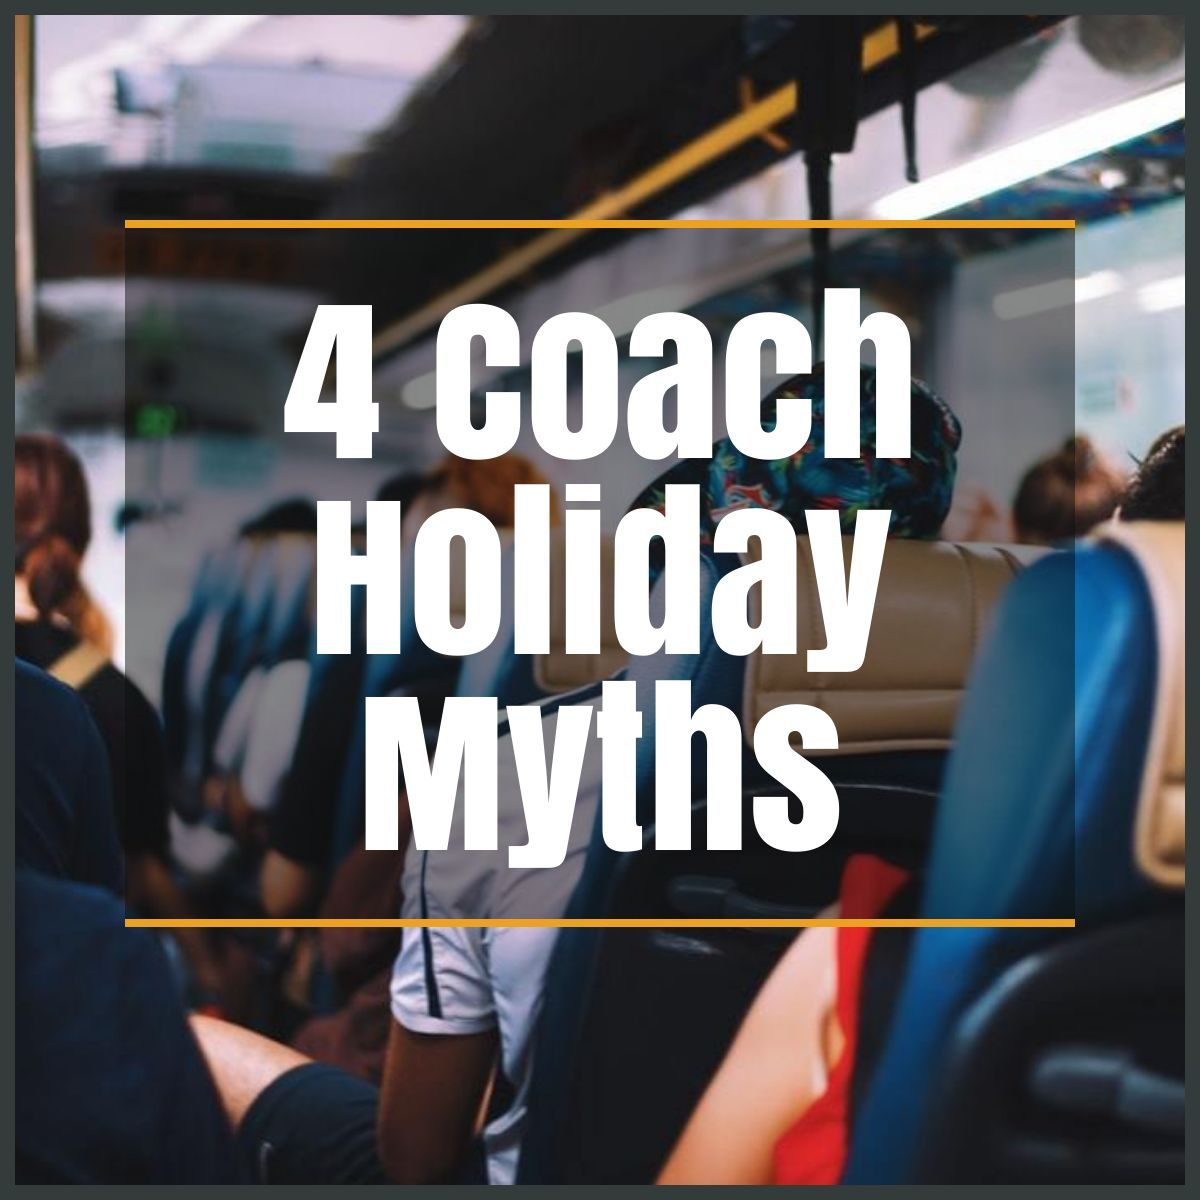 coach holiday myths the professional traveller